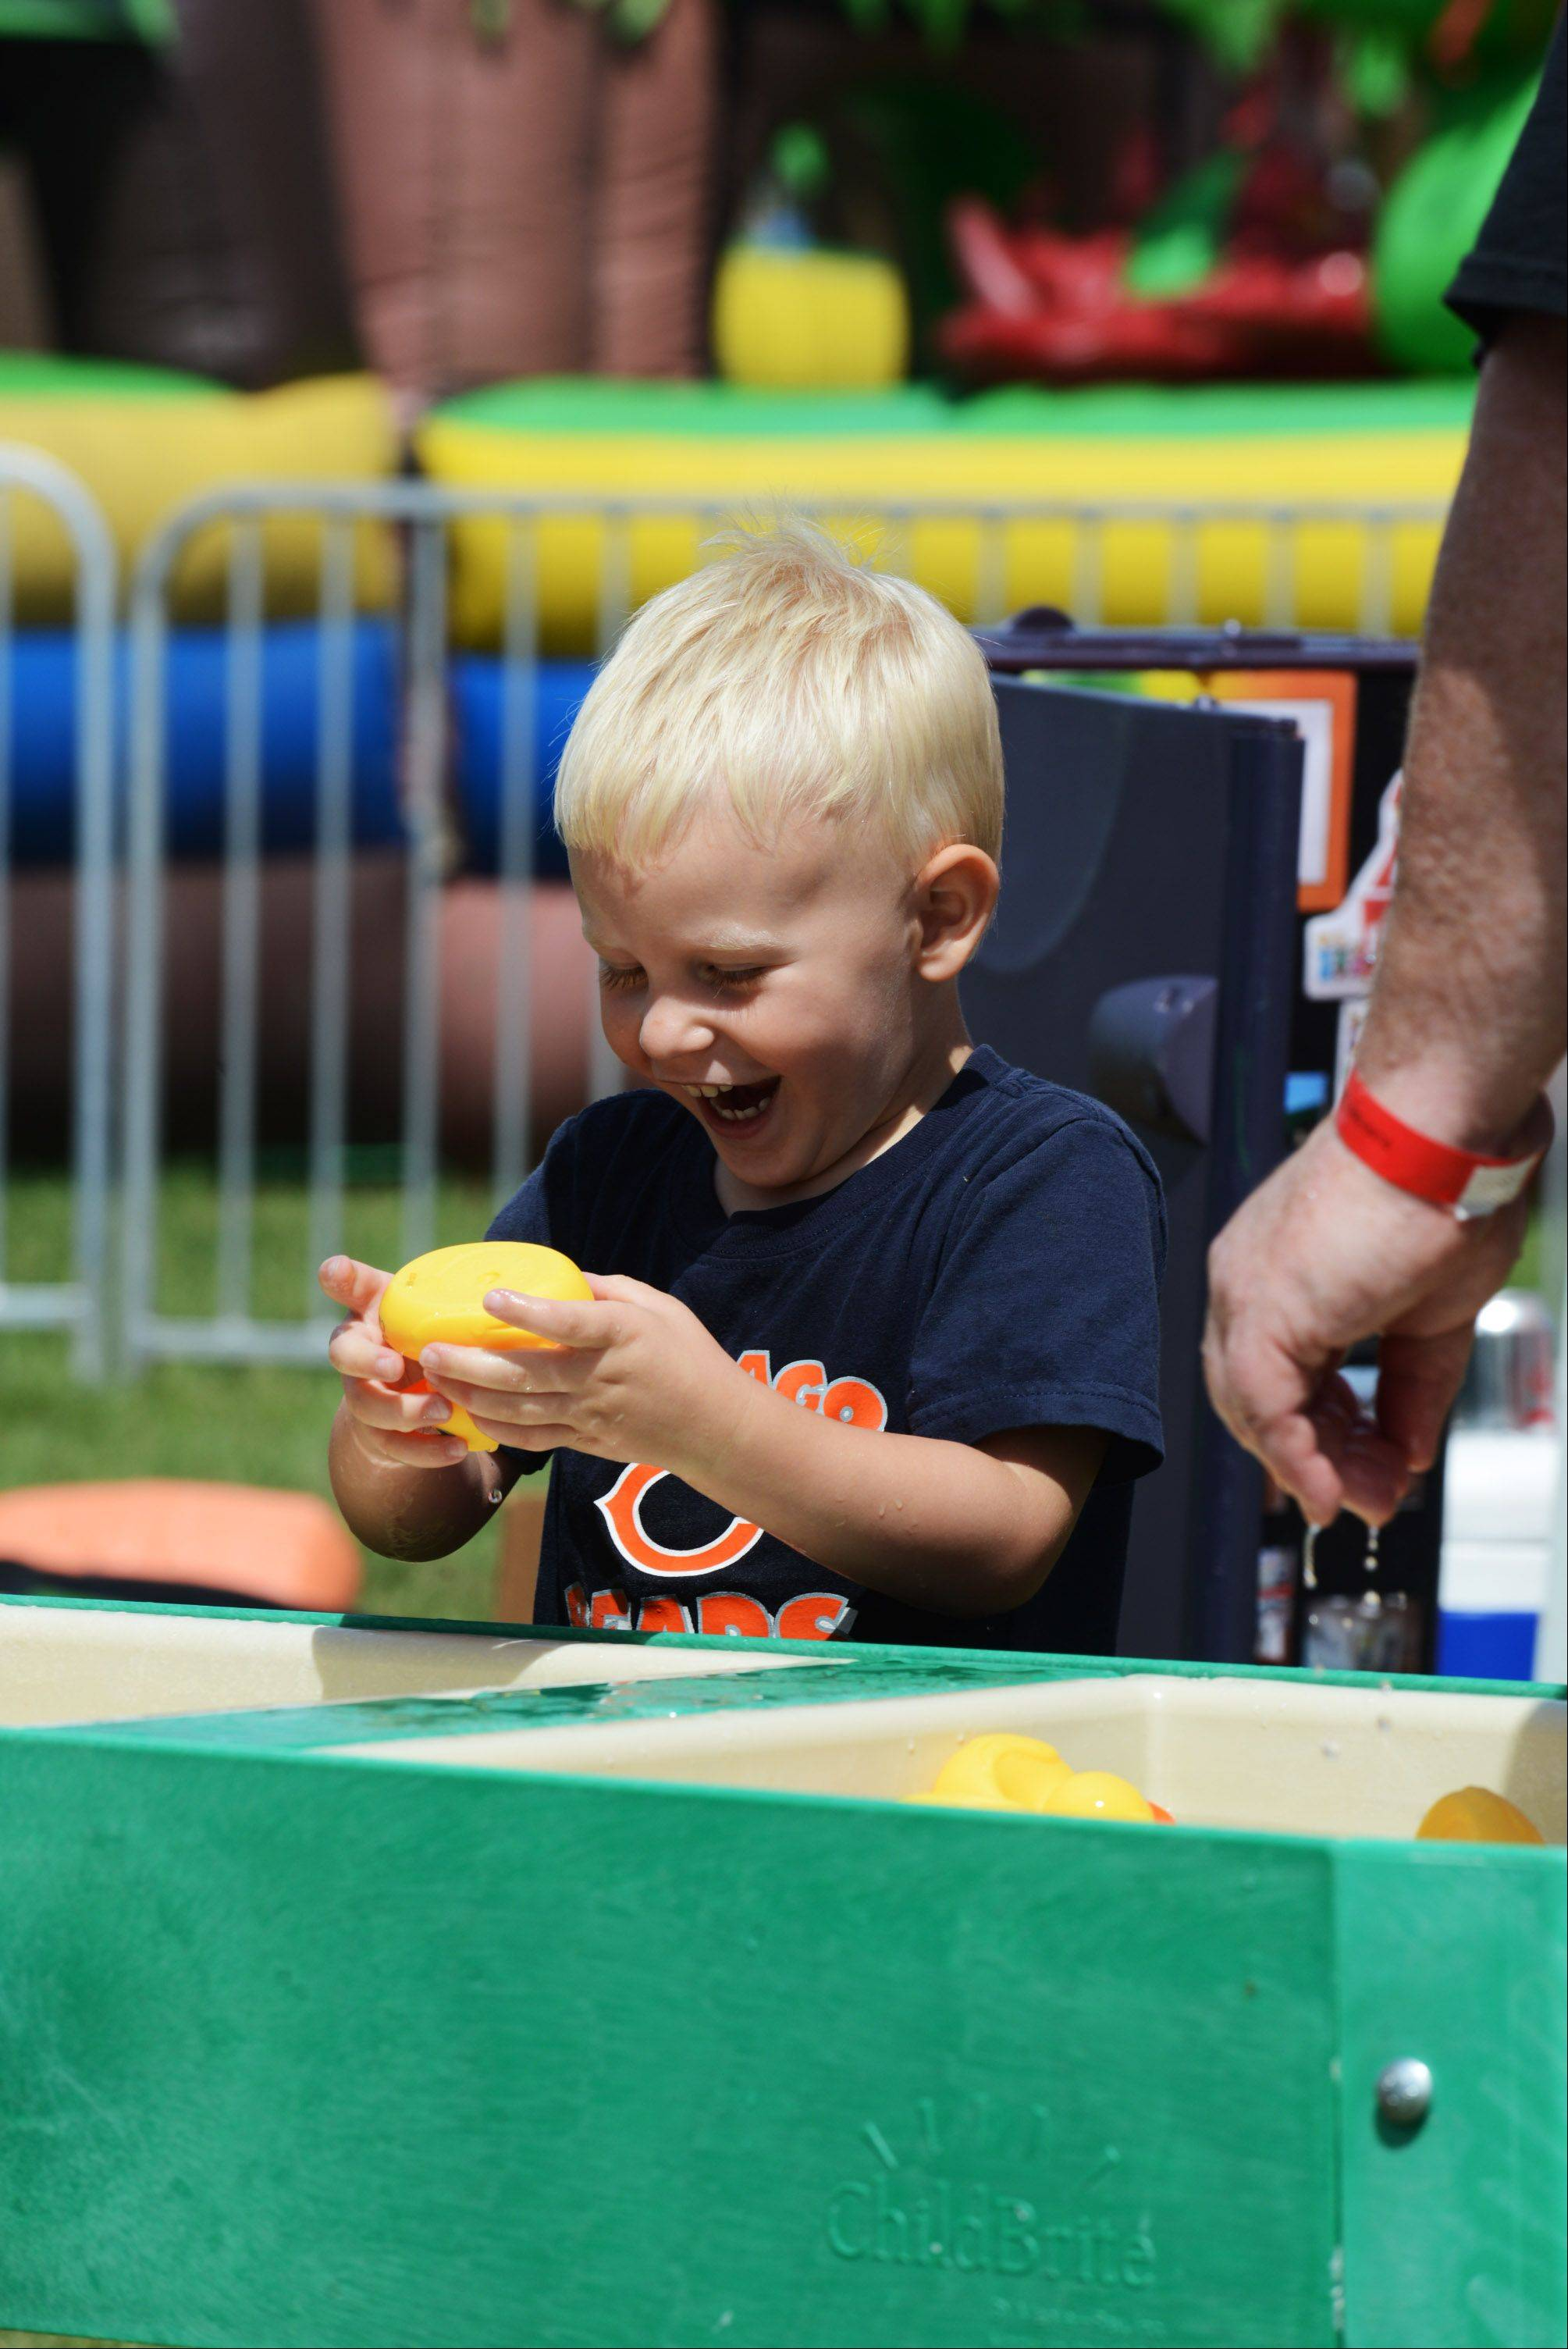 Maddux Rueff, 3, of Woodstock gets pretty excited about a rubber duck at the Safari Childcare booth at the McHenry County Fair on Saturday, August 3 in Woodstock.